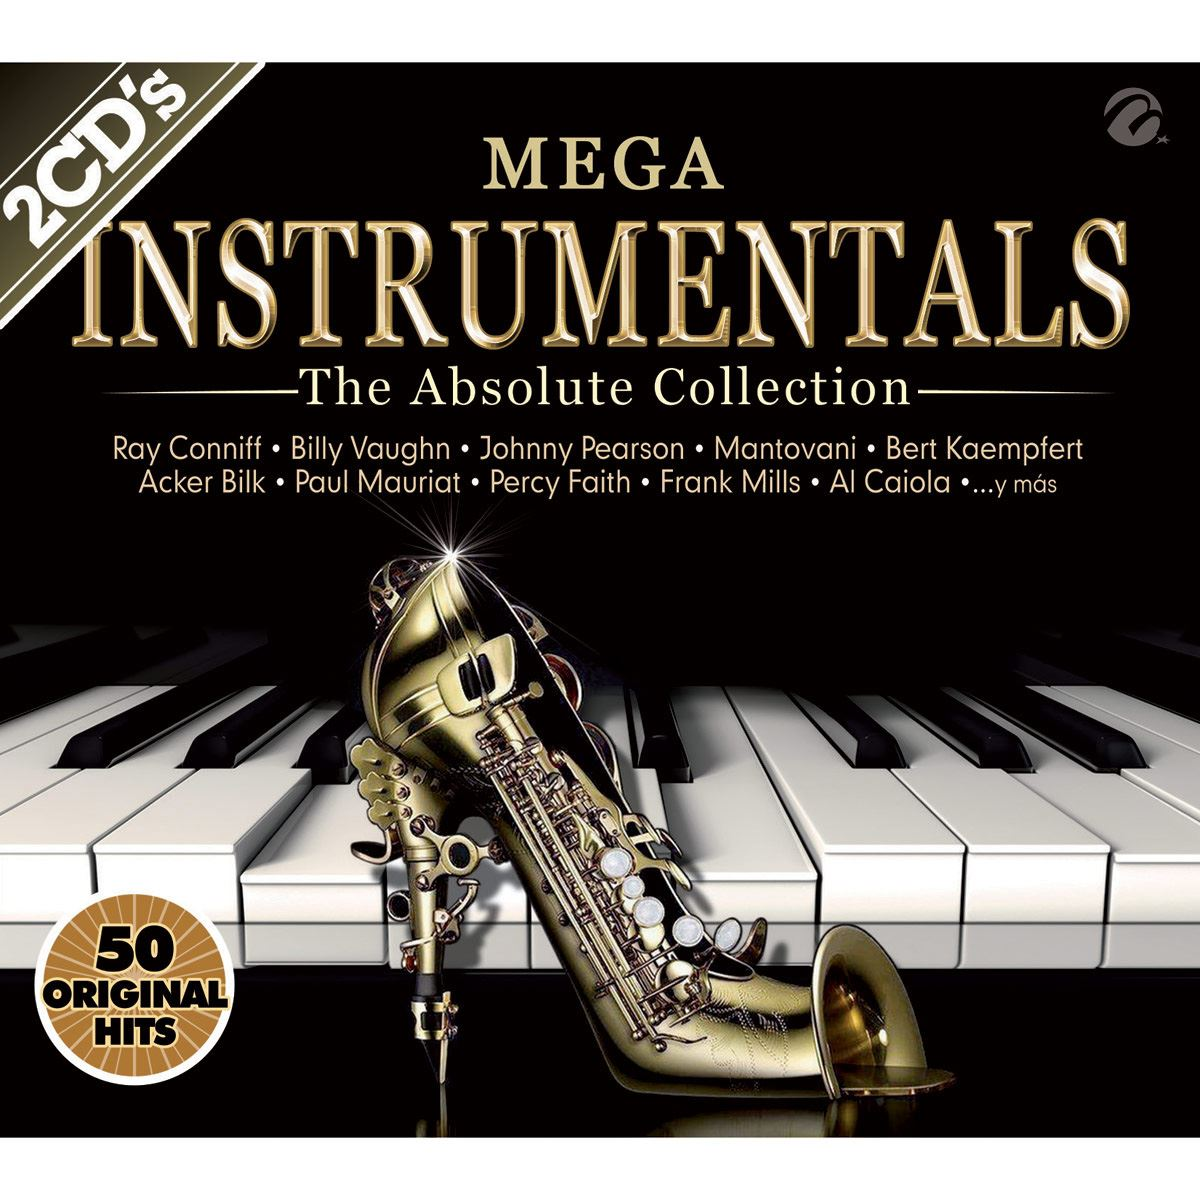 CD2 Mega Instrumentales The Absolute Collection 50 Original Hits